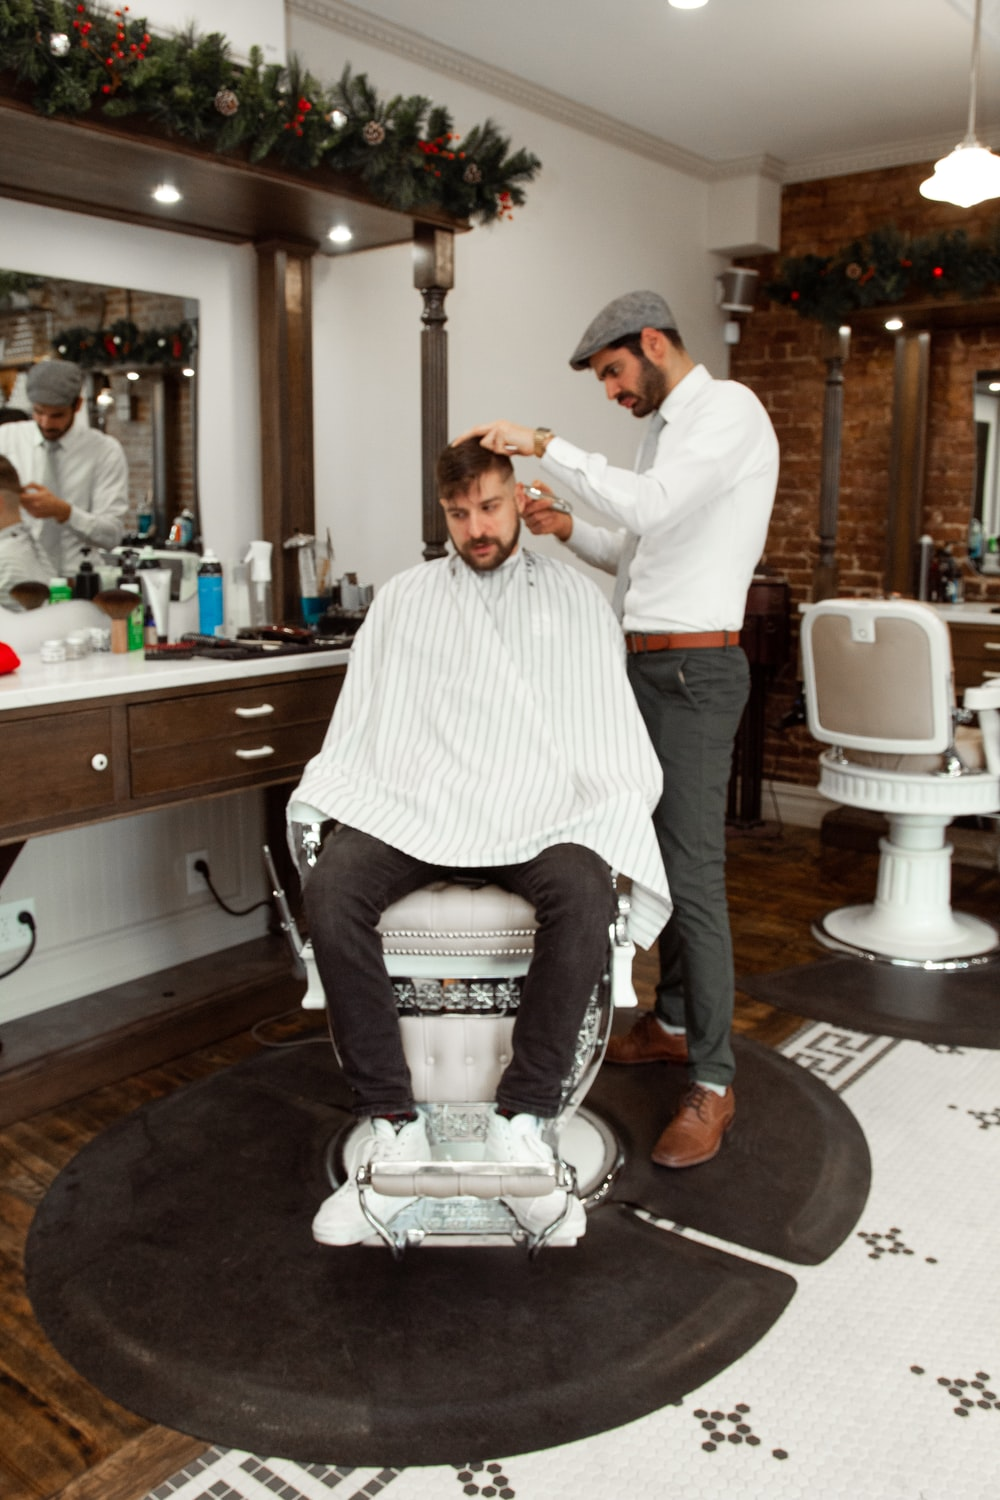 man in white dress shirt sitting on barber chair